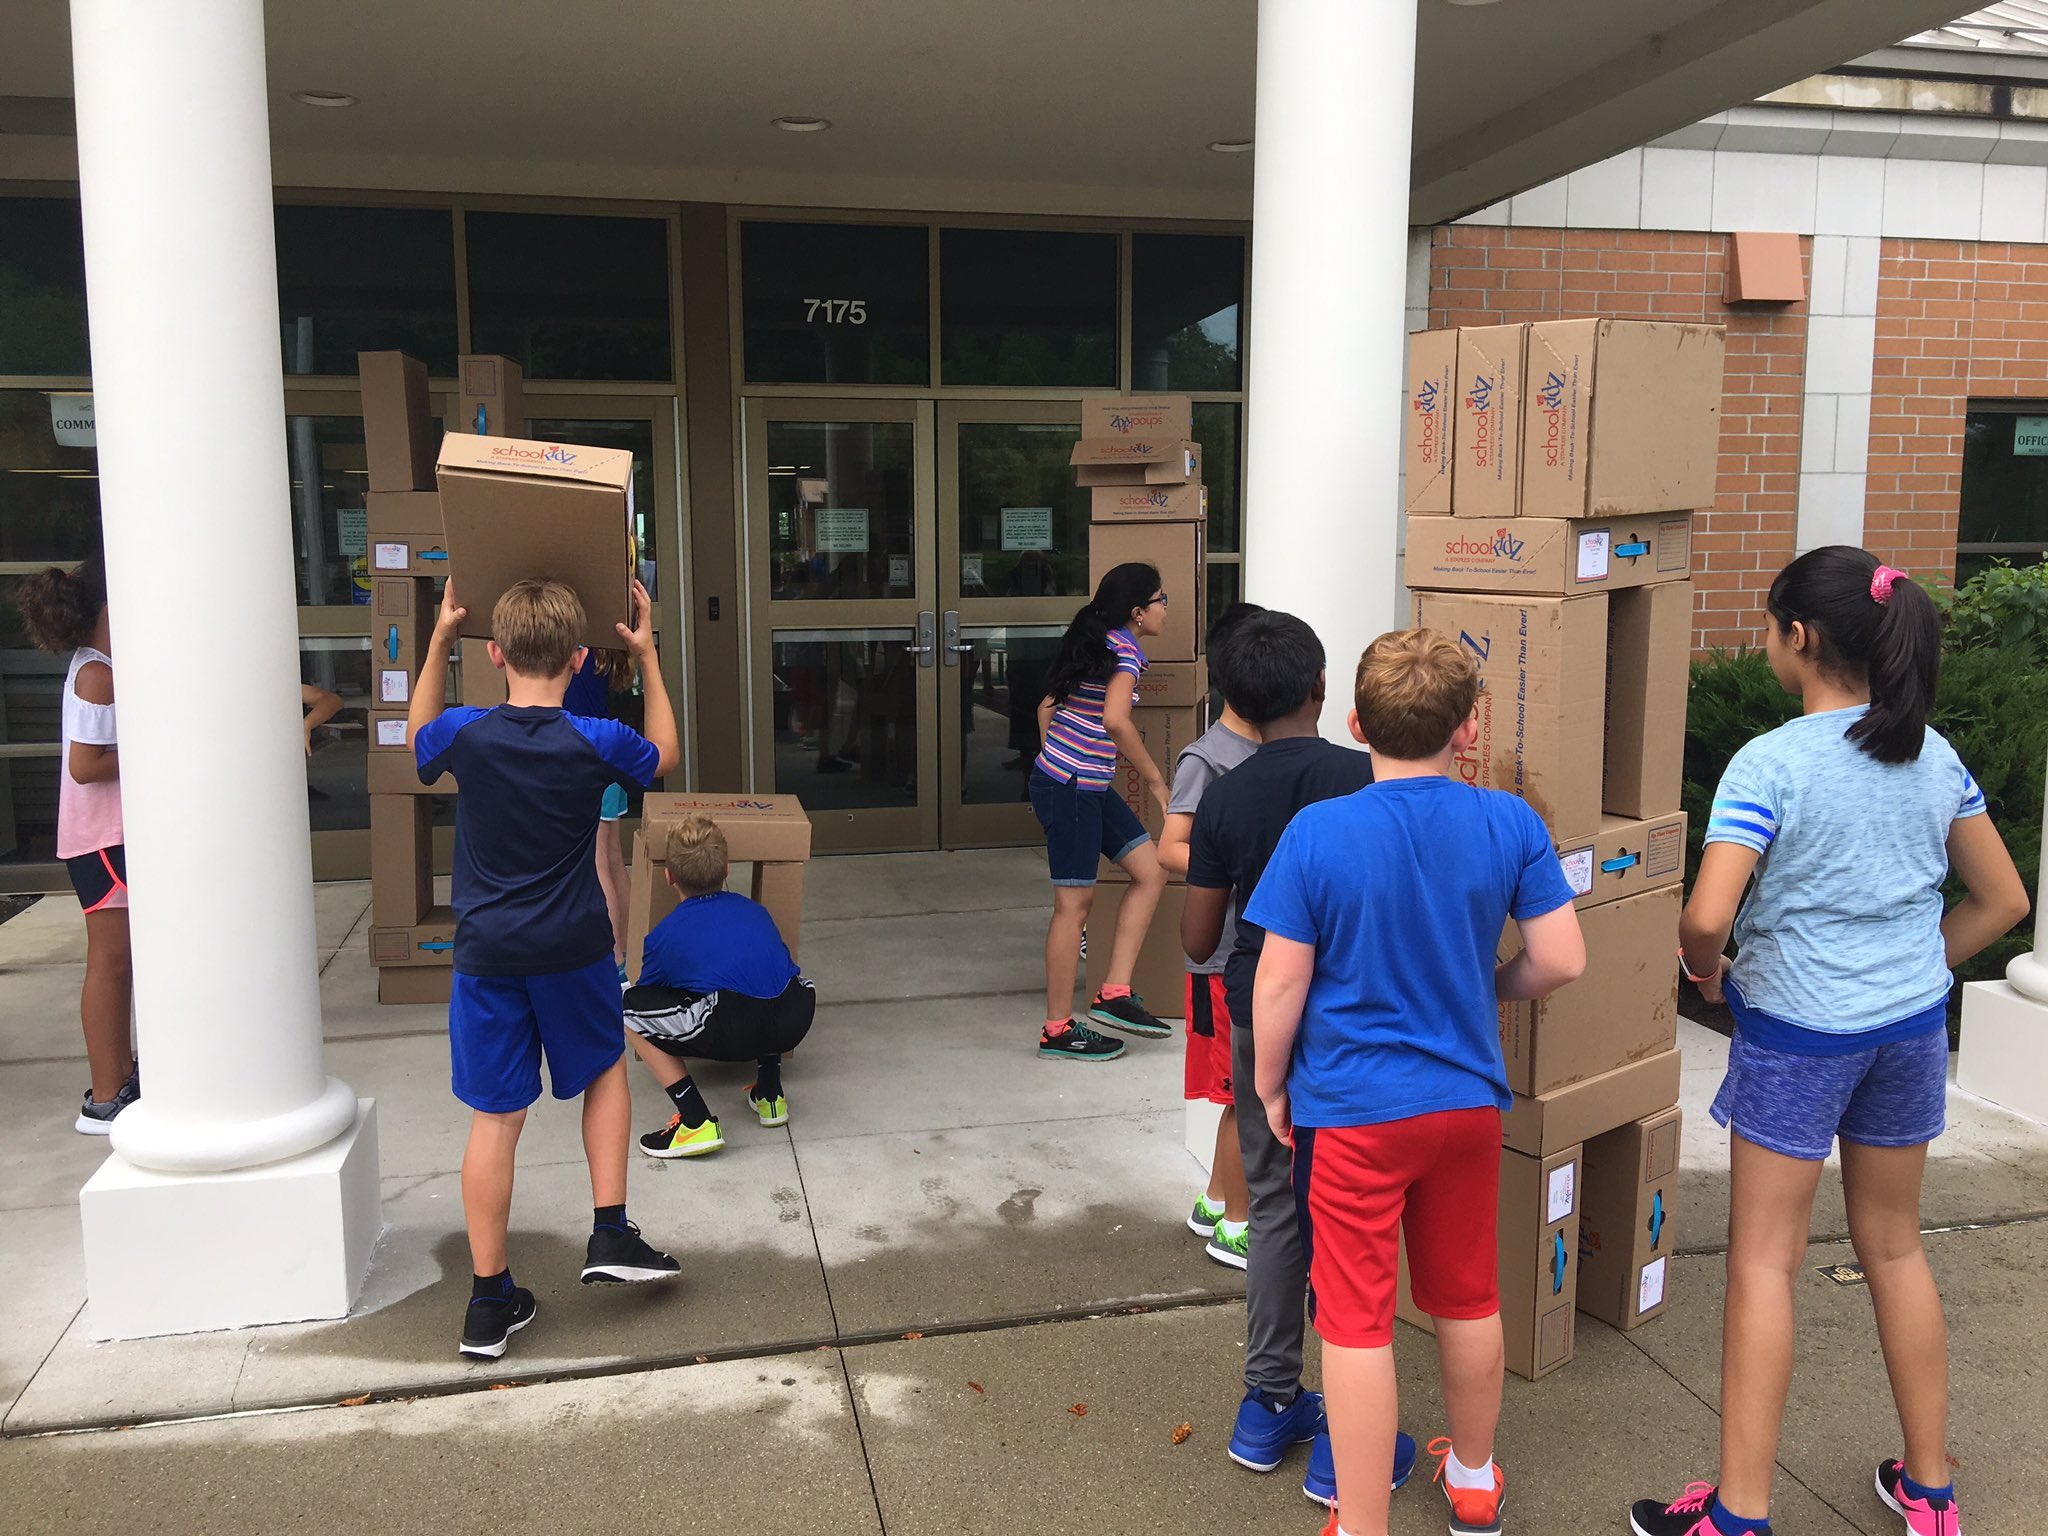 Learning to collaborate in 5th grade at @greDCSD  such a great way to start the school year. #theDublinDifference https://t.co/DGVL8NL6c1